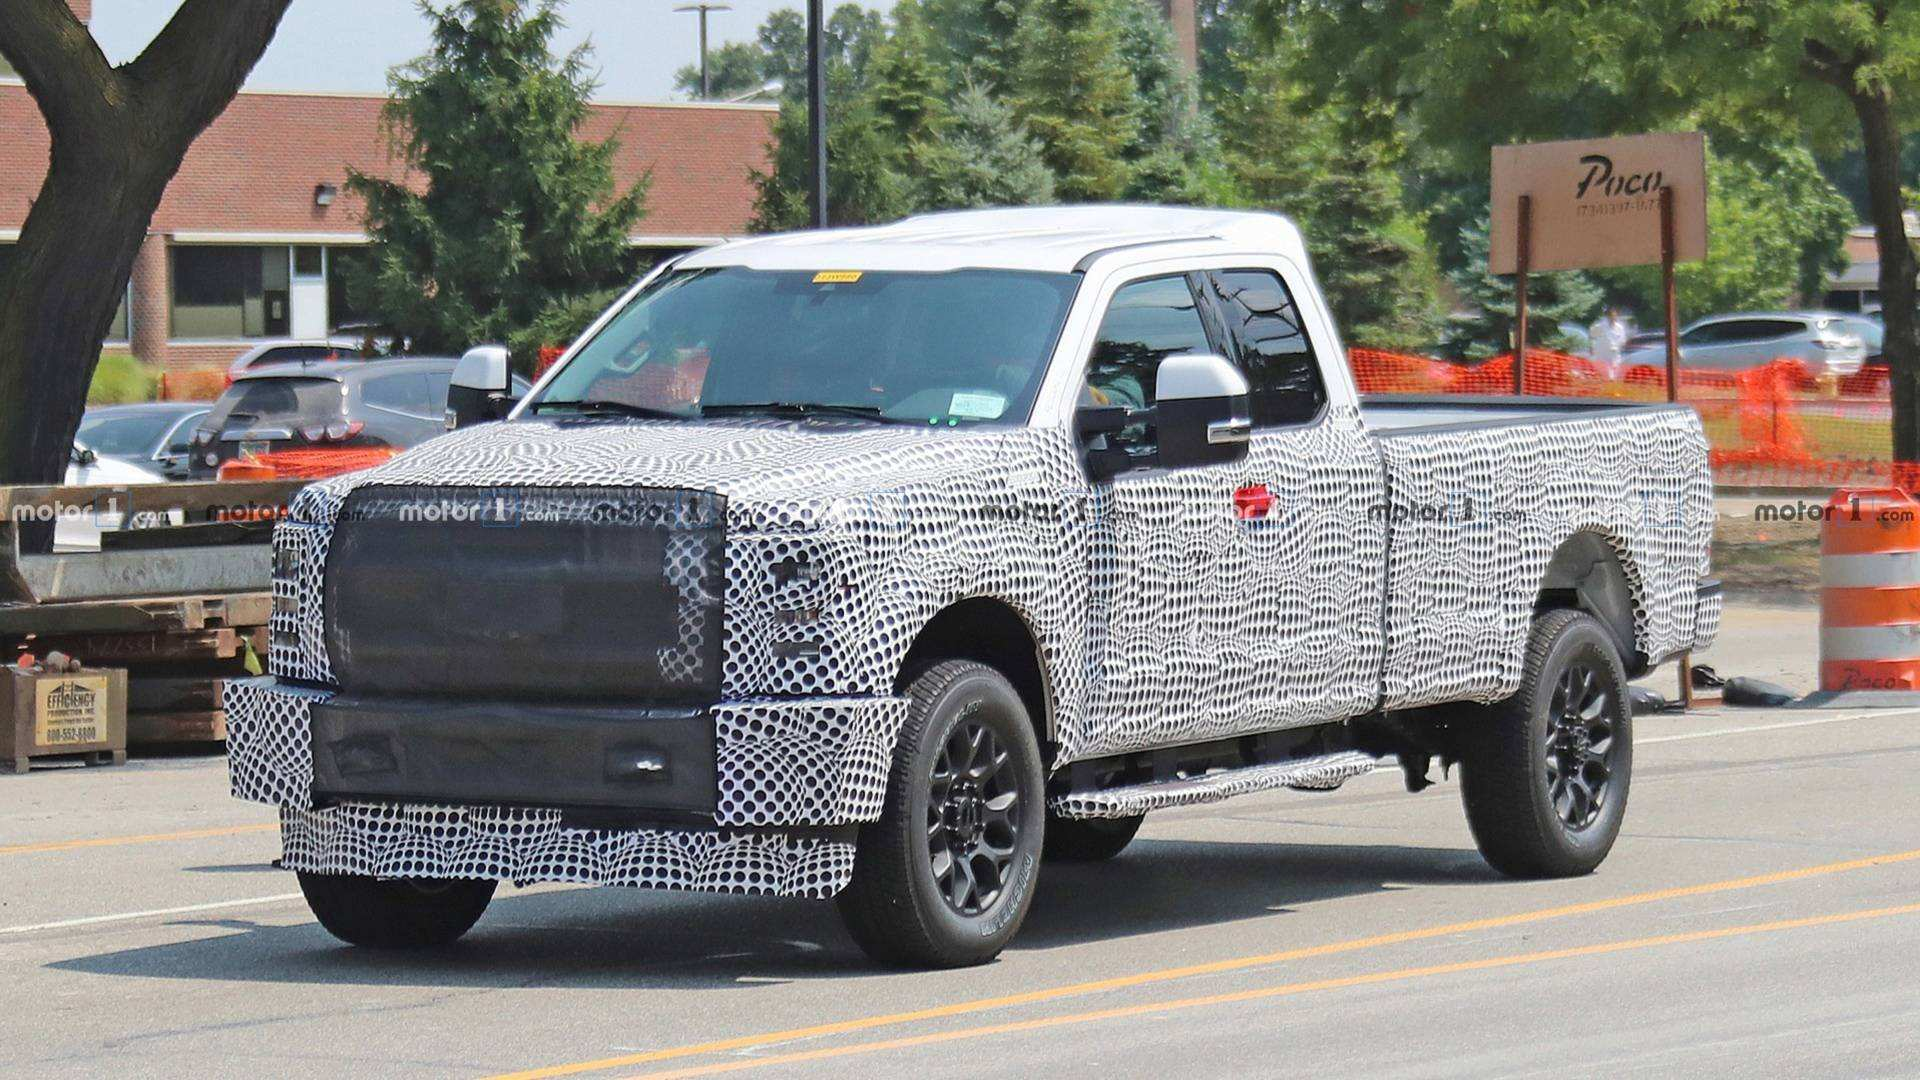 93 All New Spy Shots Ford F350 Diesel Release Date And Concept